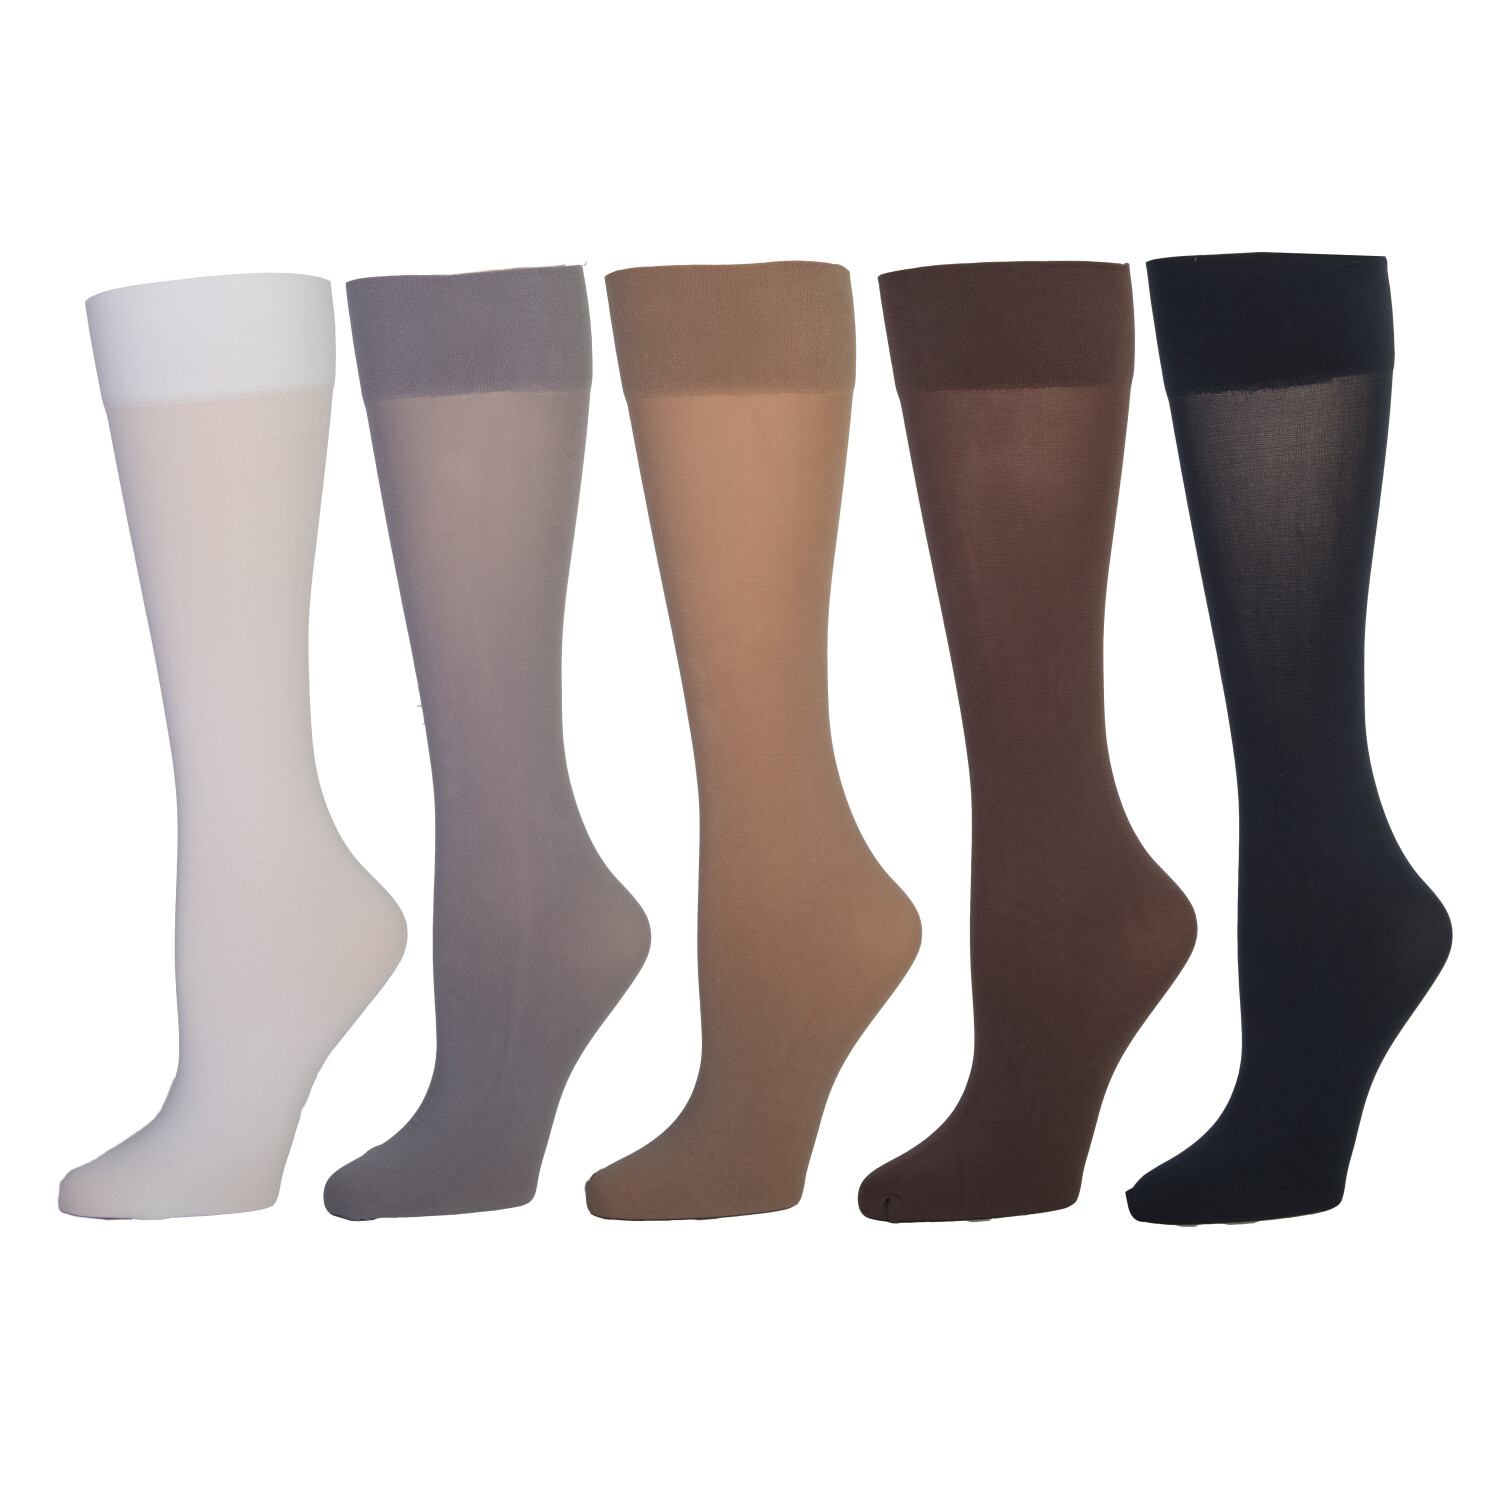 Celeste Stein Semi-Sheer Microfiber Knee Highs 5 Pairs for Women - One Size - One Size - Multi